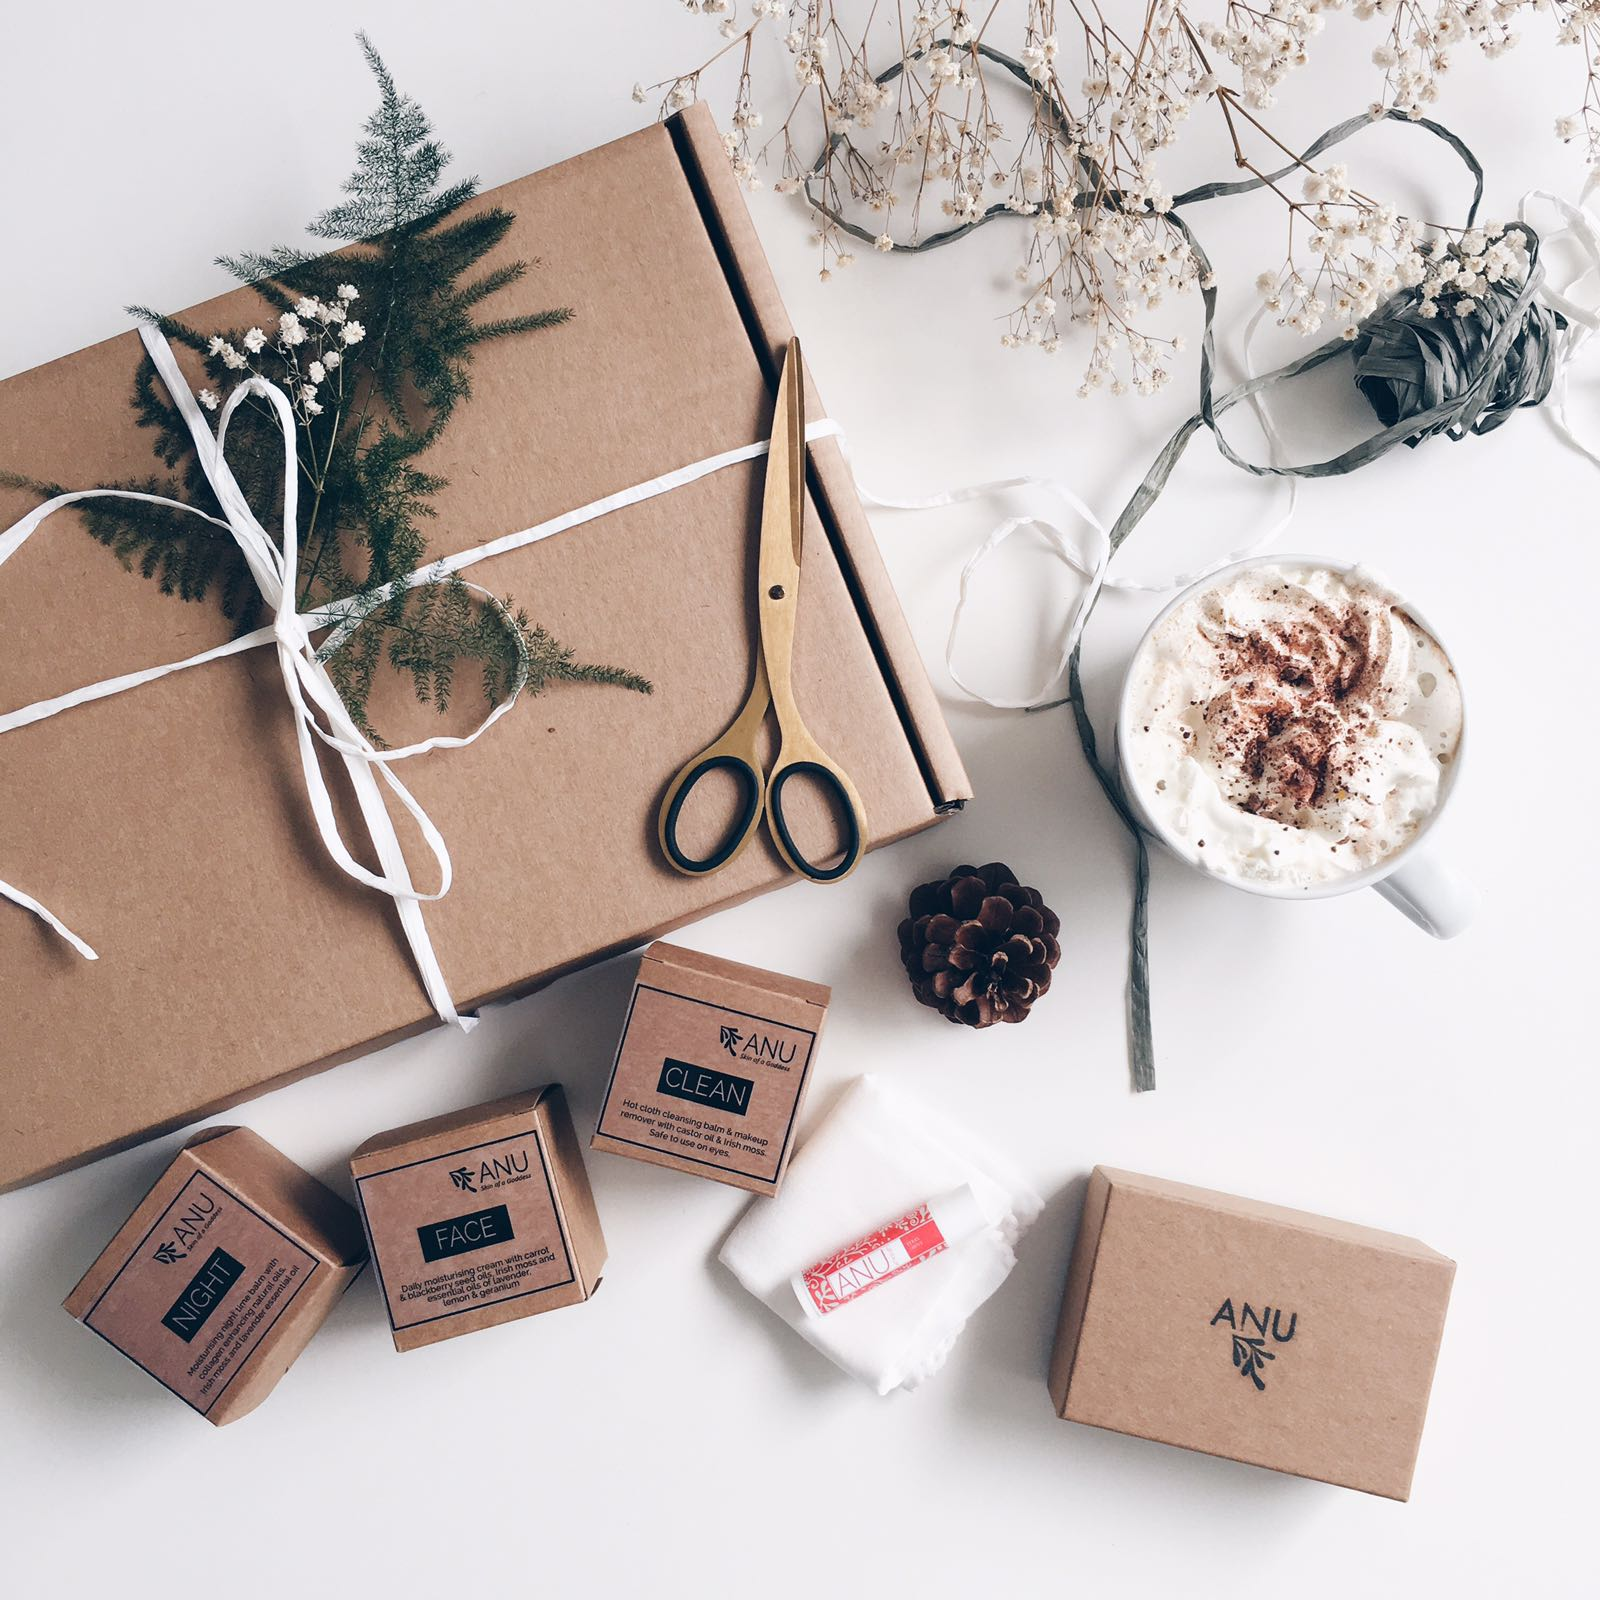 gift ideas from brand called Anu